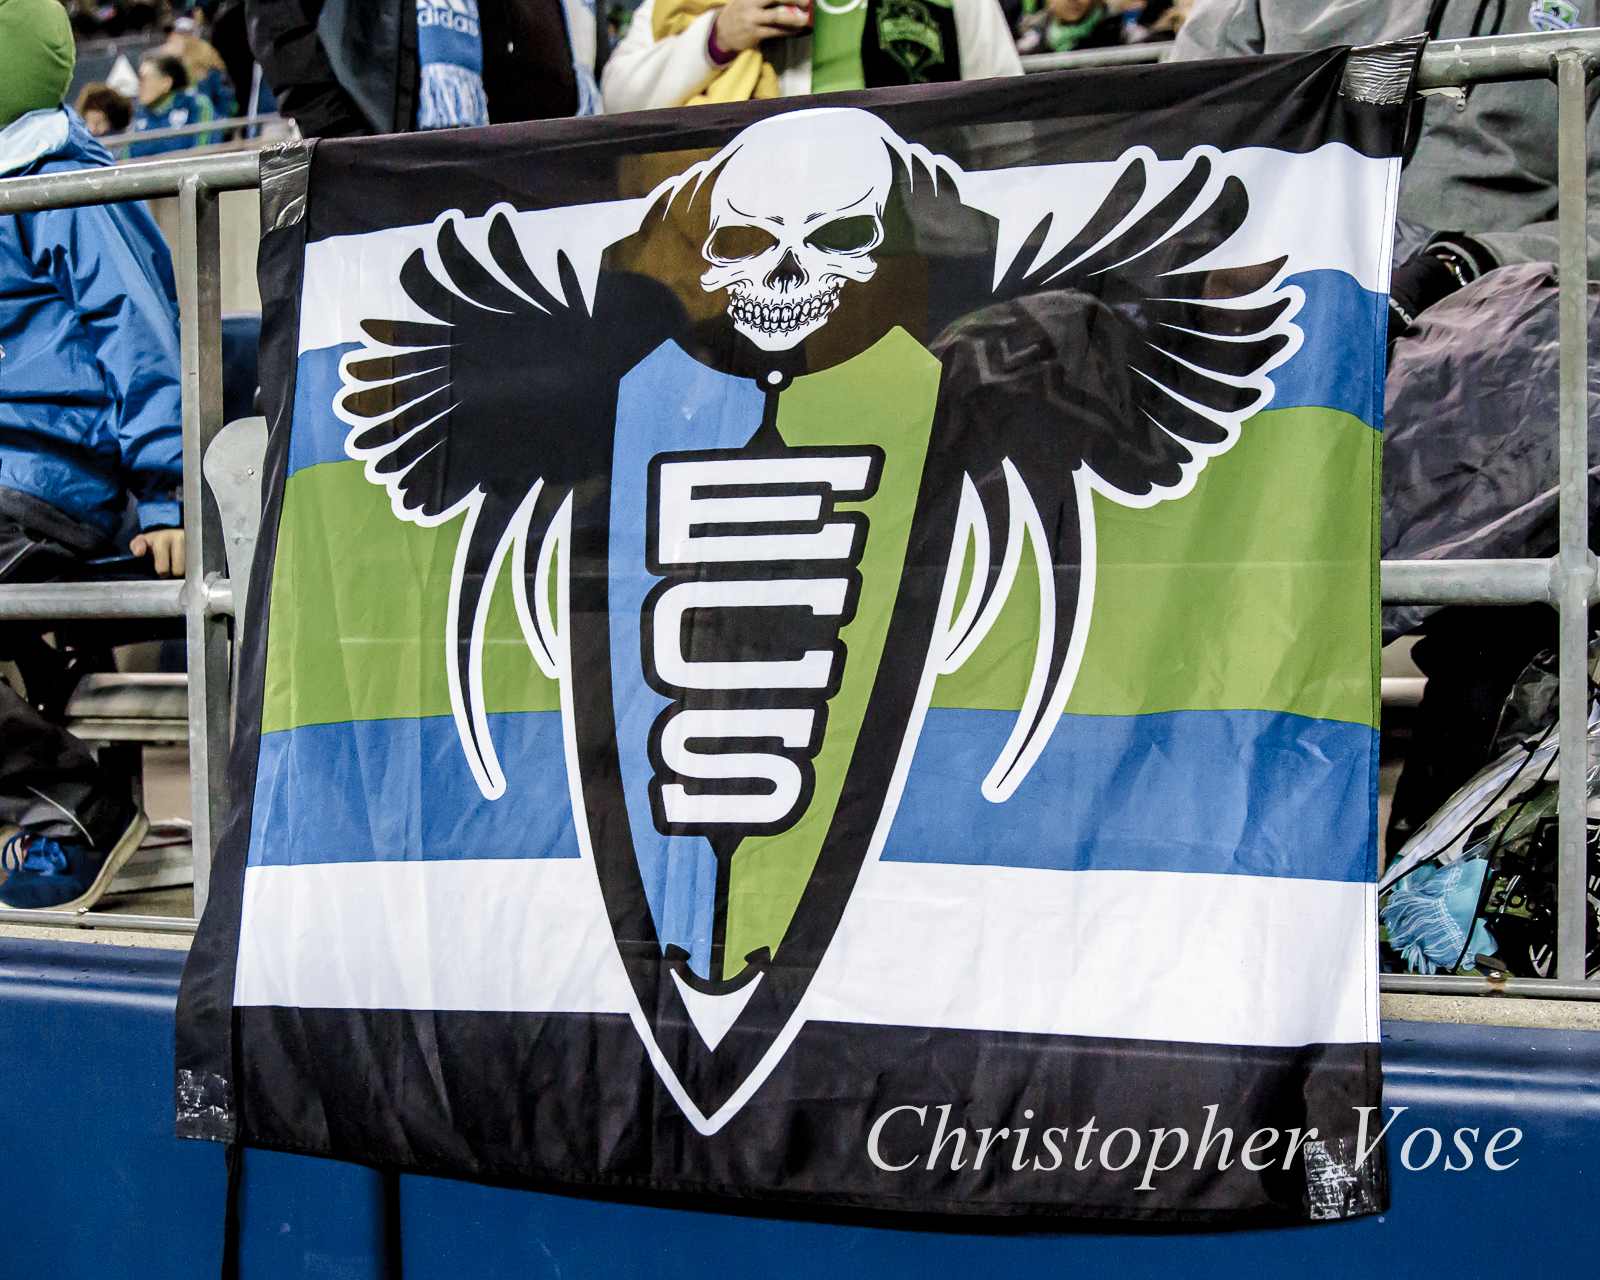 2017-11-02 Emerald City Supporters Flag.jpg